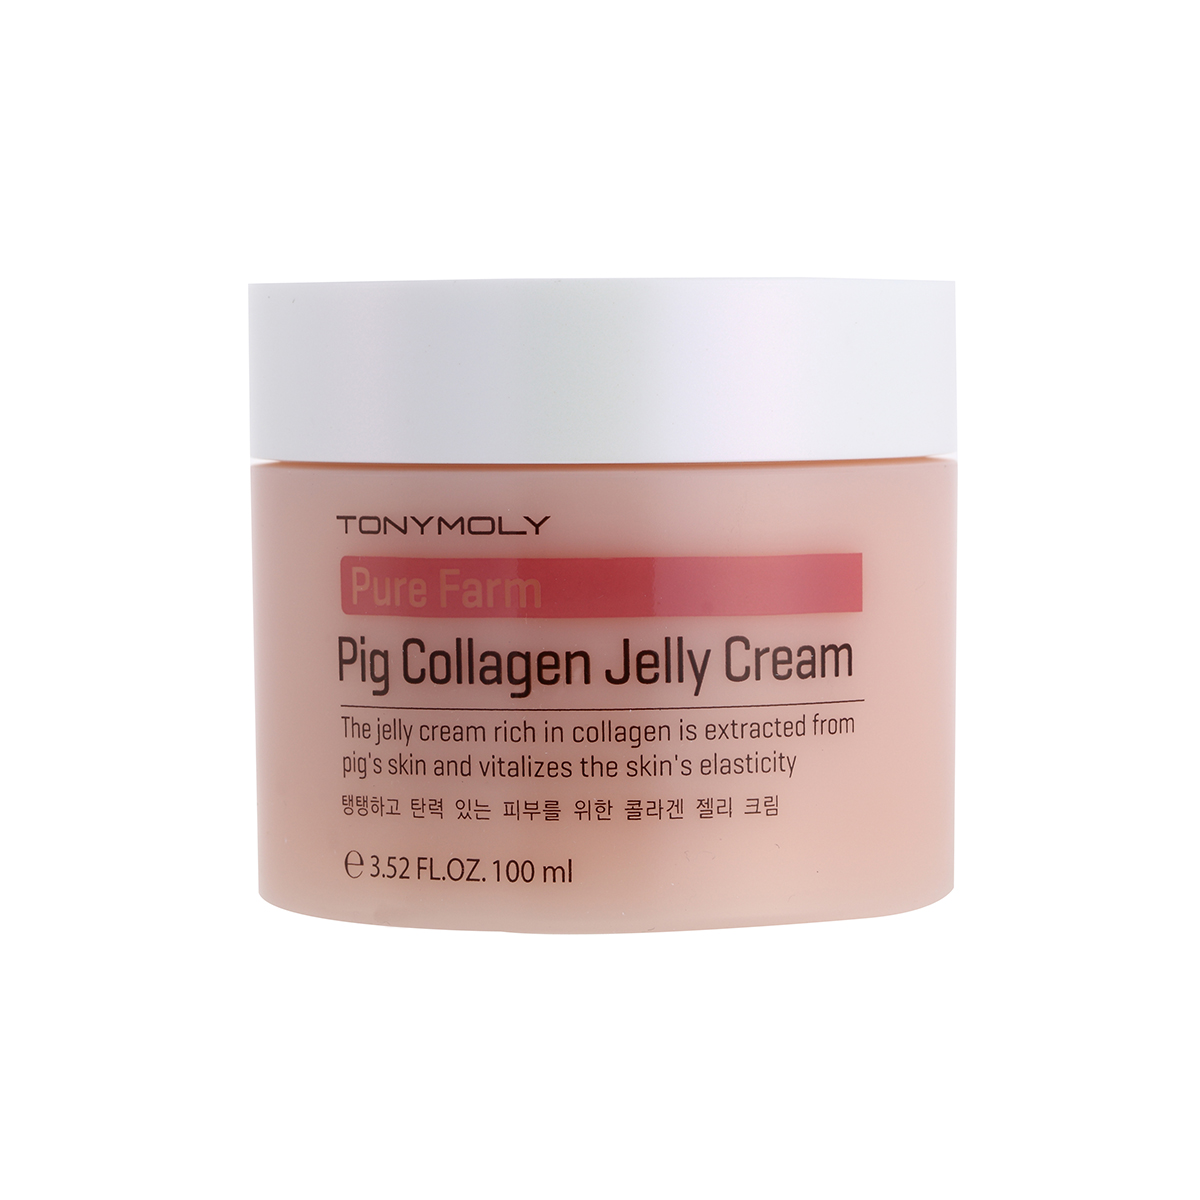 Pig Collagen Jelly Cream, $28 - Don't be intimated by the label. This is essentially a jelly facial cream (extracted from pig's skin) that helps boost skin elasticity. It has a grapefruit scent, and the initial stickiness is quickly absorbed once you pat it in. Depending on your skin type, it's a worthwhile addition to your daily skincare routine.—Xiaofei Jalette